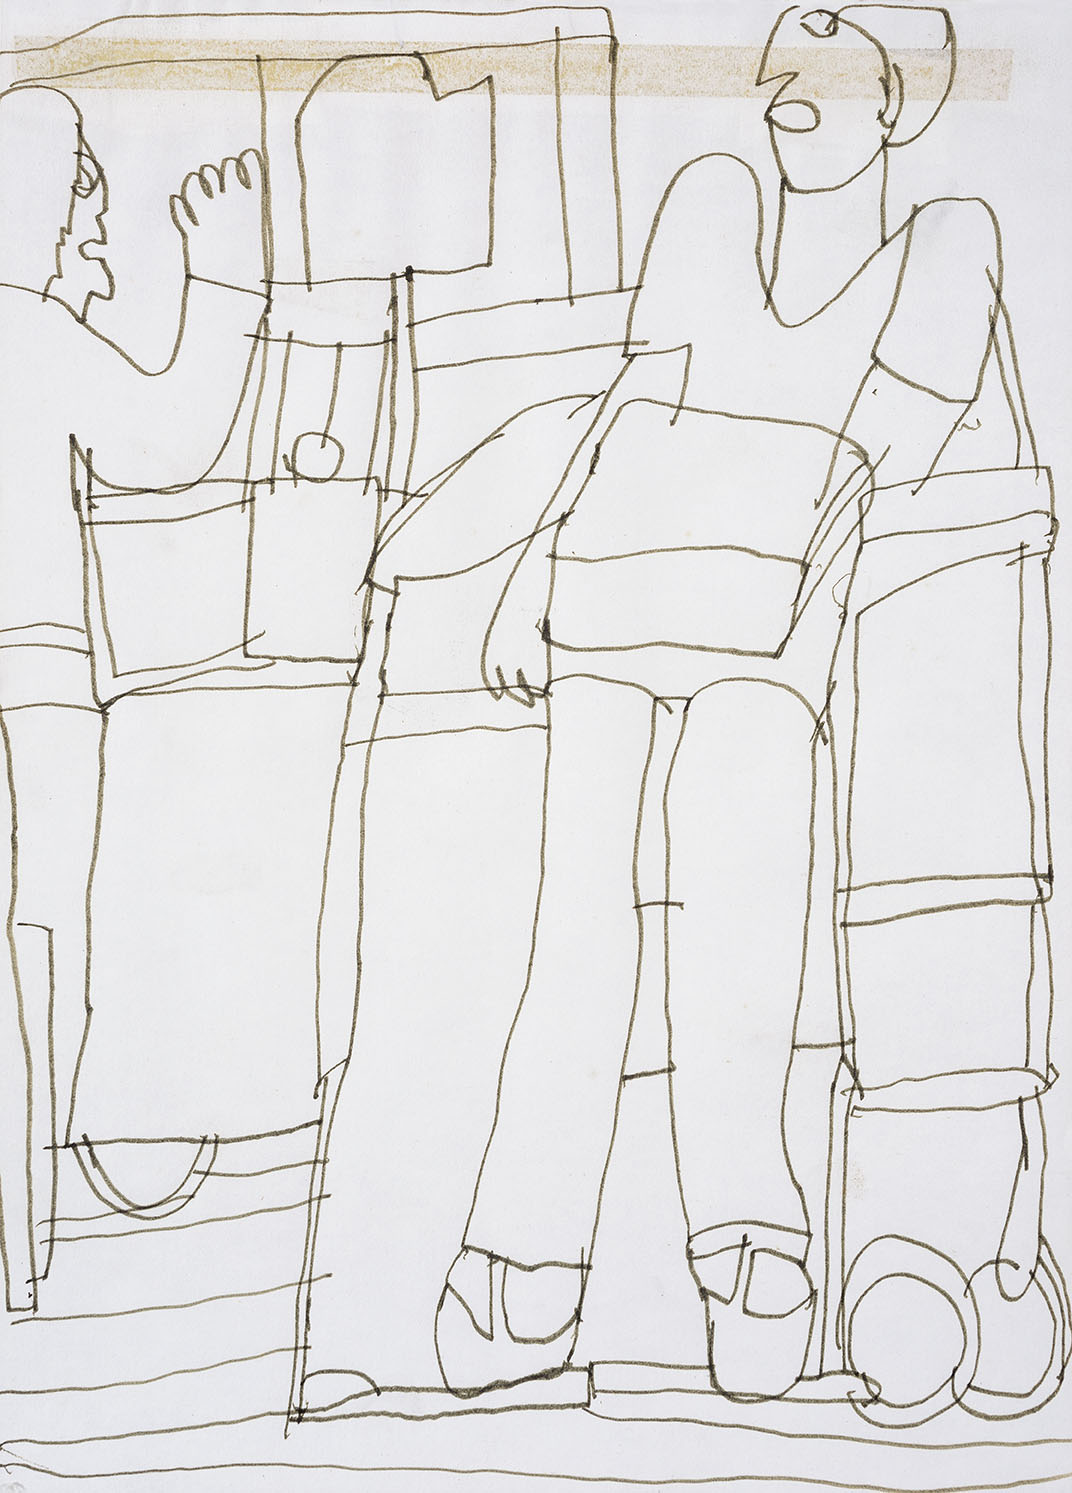 Gerald Fisher (d.1970s)    Two Residents,  c.1970, Pen and ink on paper, 14 x 10 in  [CAS 38] Donated by Mrs Harding in 1981